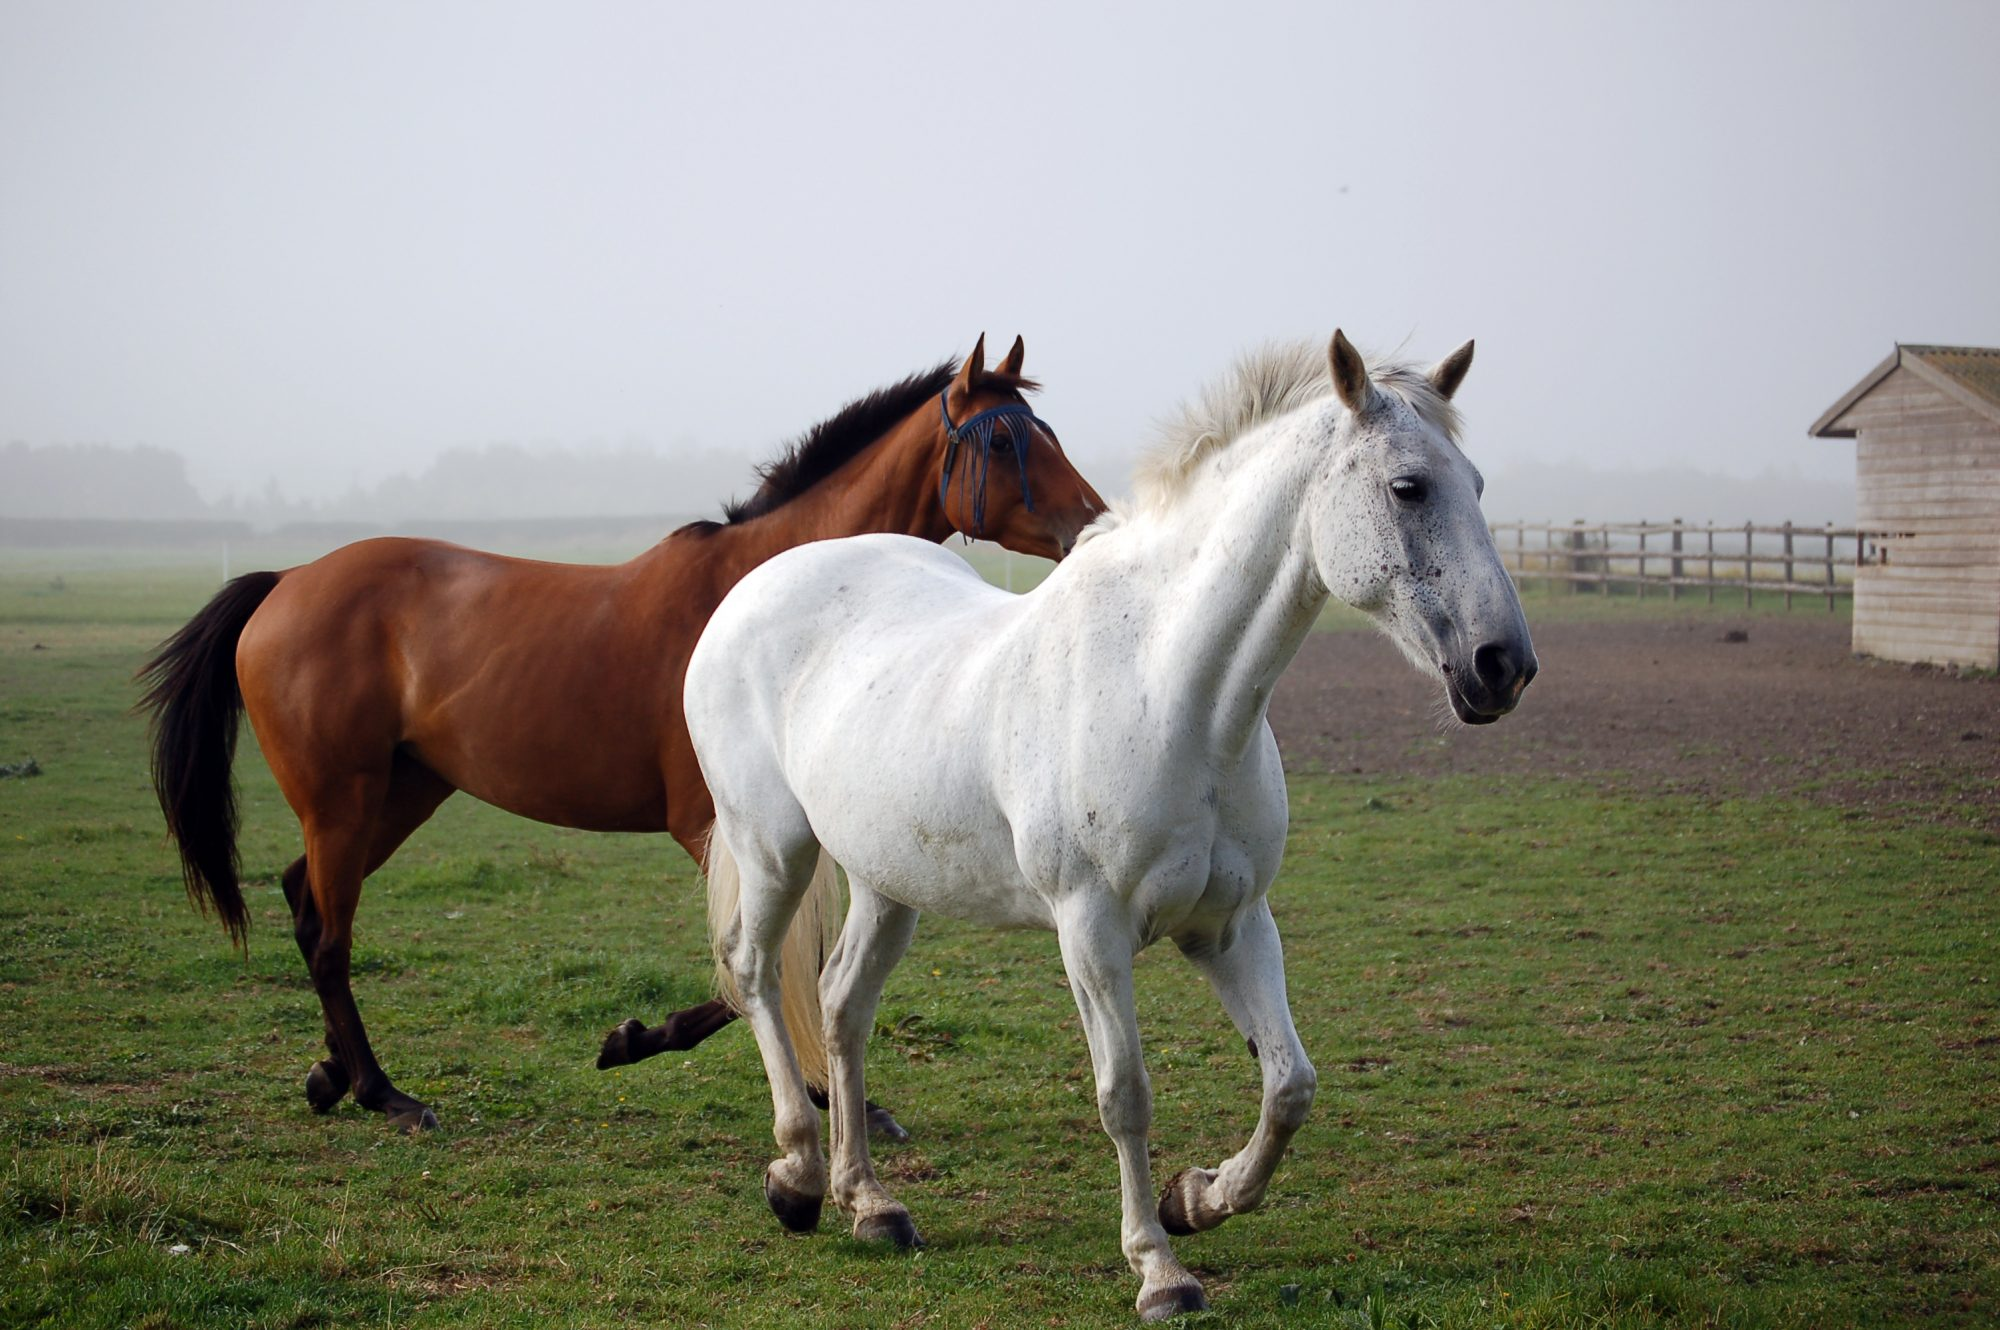 brown and white horses trotting in field